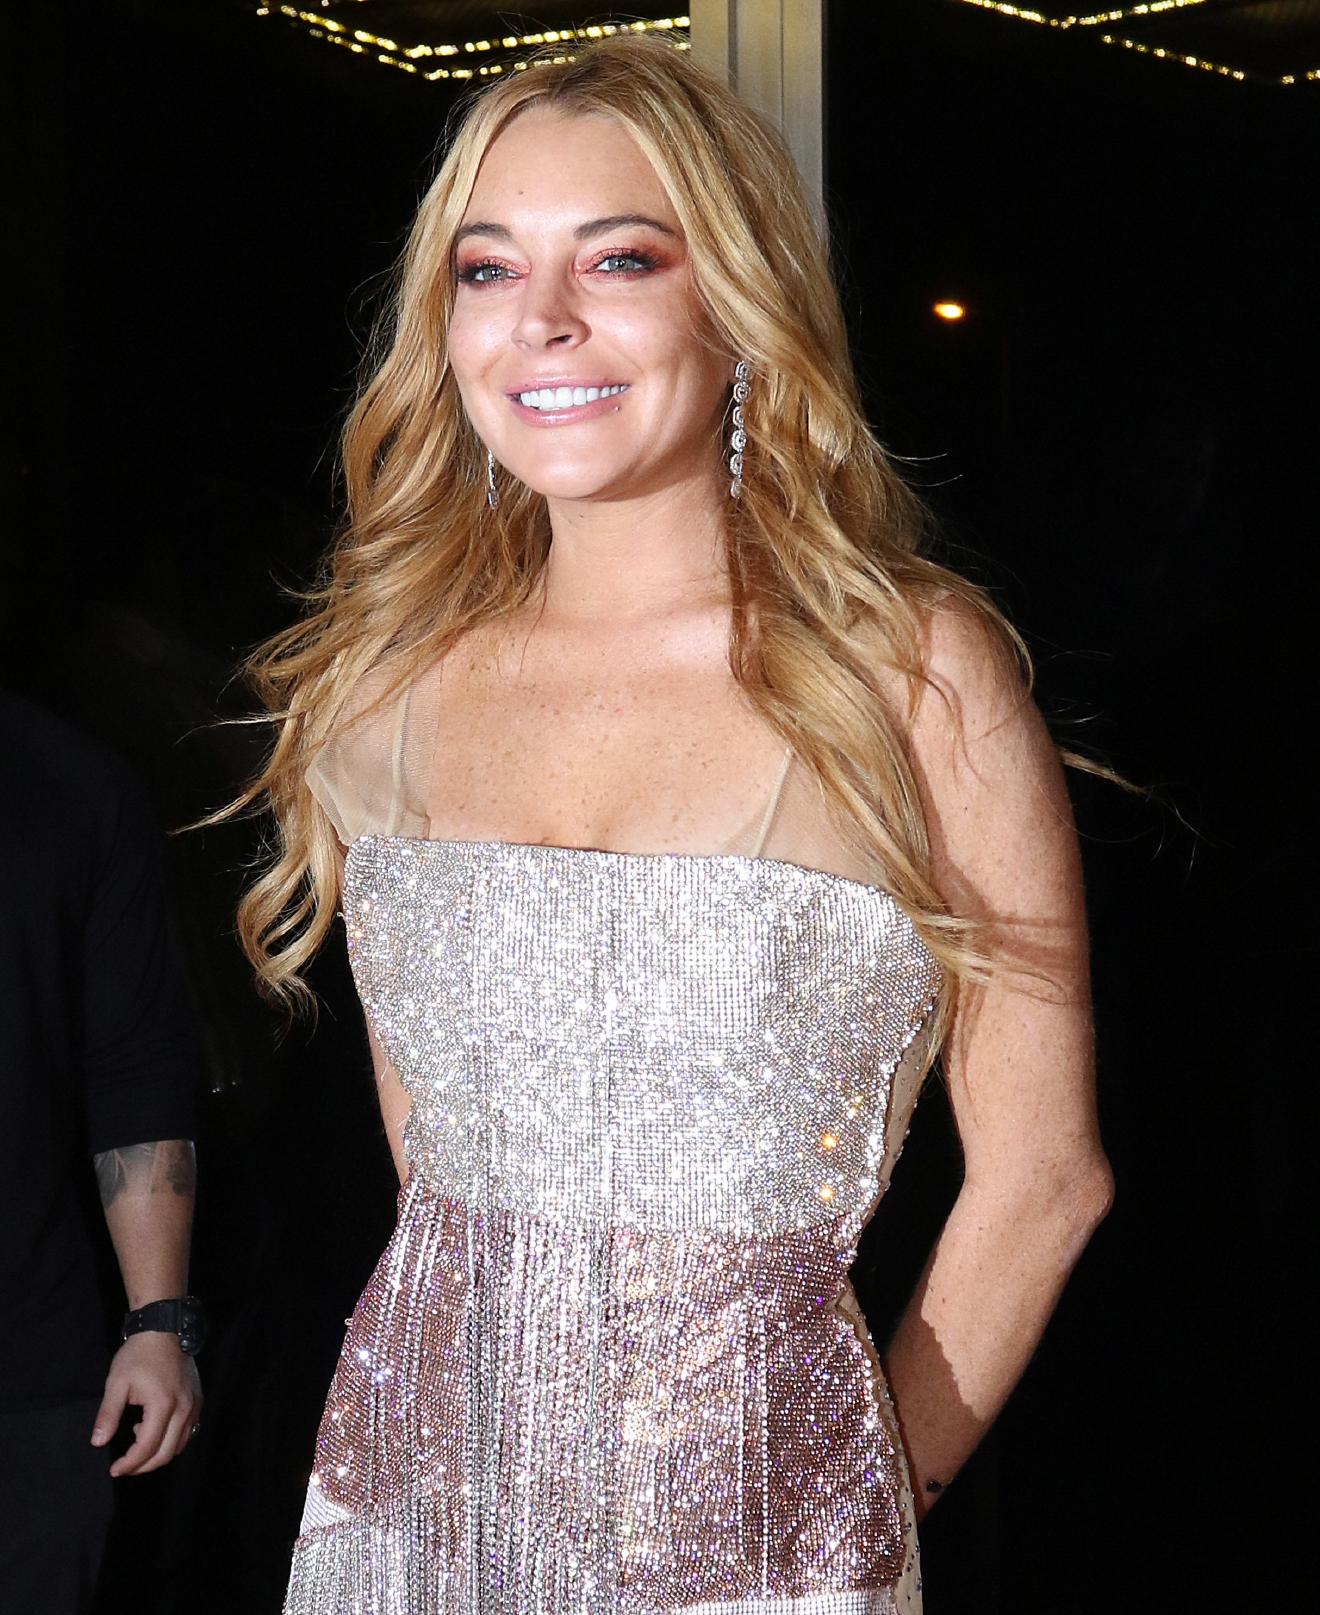 "Lindsay Lohan attends the opening of her new nightclub in Athens, Greece called 'Lohan'. A Lindsay Lohan spokesperson reportedly told TMZ that Lohan will stop by the club, co-owned by her friend Dennis Papageorgiou, a few times a month. They also said it has an ""abandoned factory"" look, a VIP section, and a VVIP section.                                                                      Featuring: Lindsay Lohan                                   Where: Athens, Greece                                   When: 15 Oct 2016                                   Credit: Papadakis Press/WENN.com                                                                      **Not available for Publication in Greece, Cyprus**"